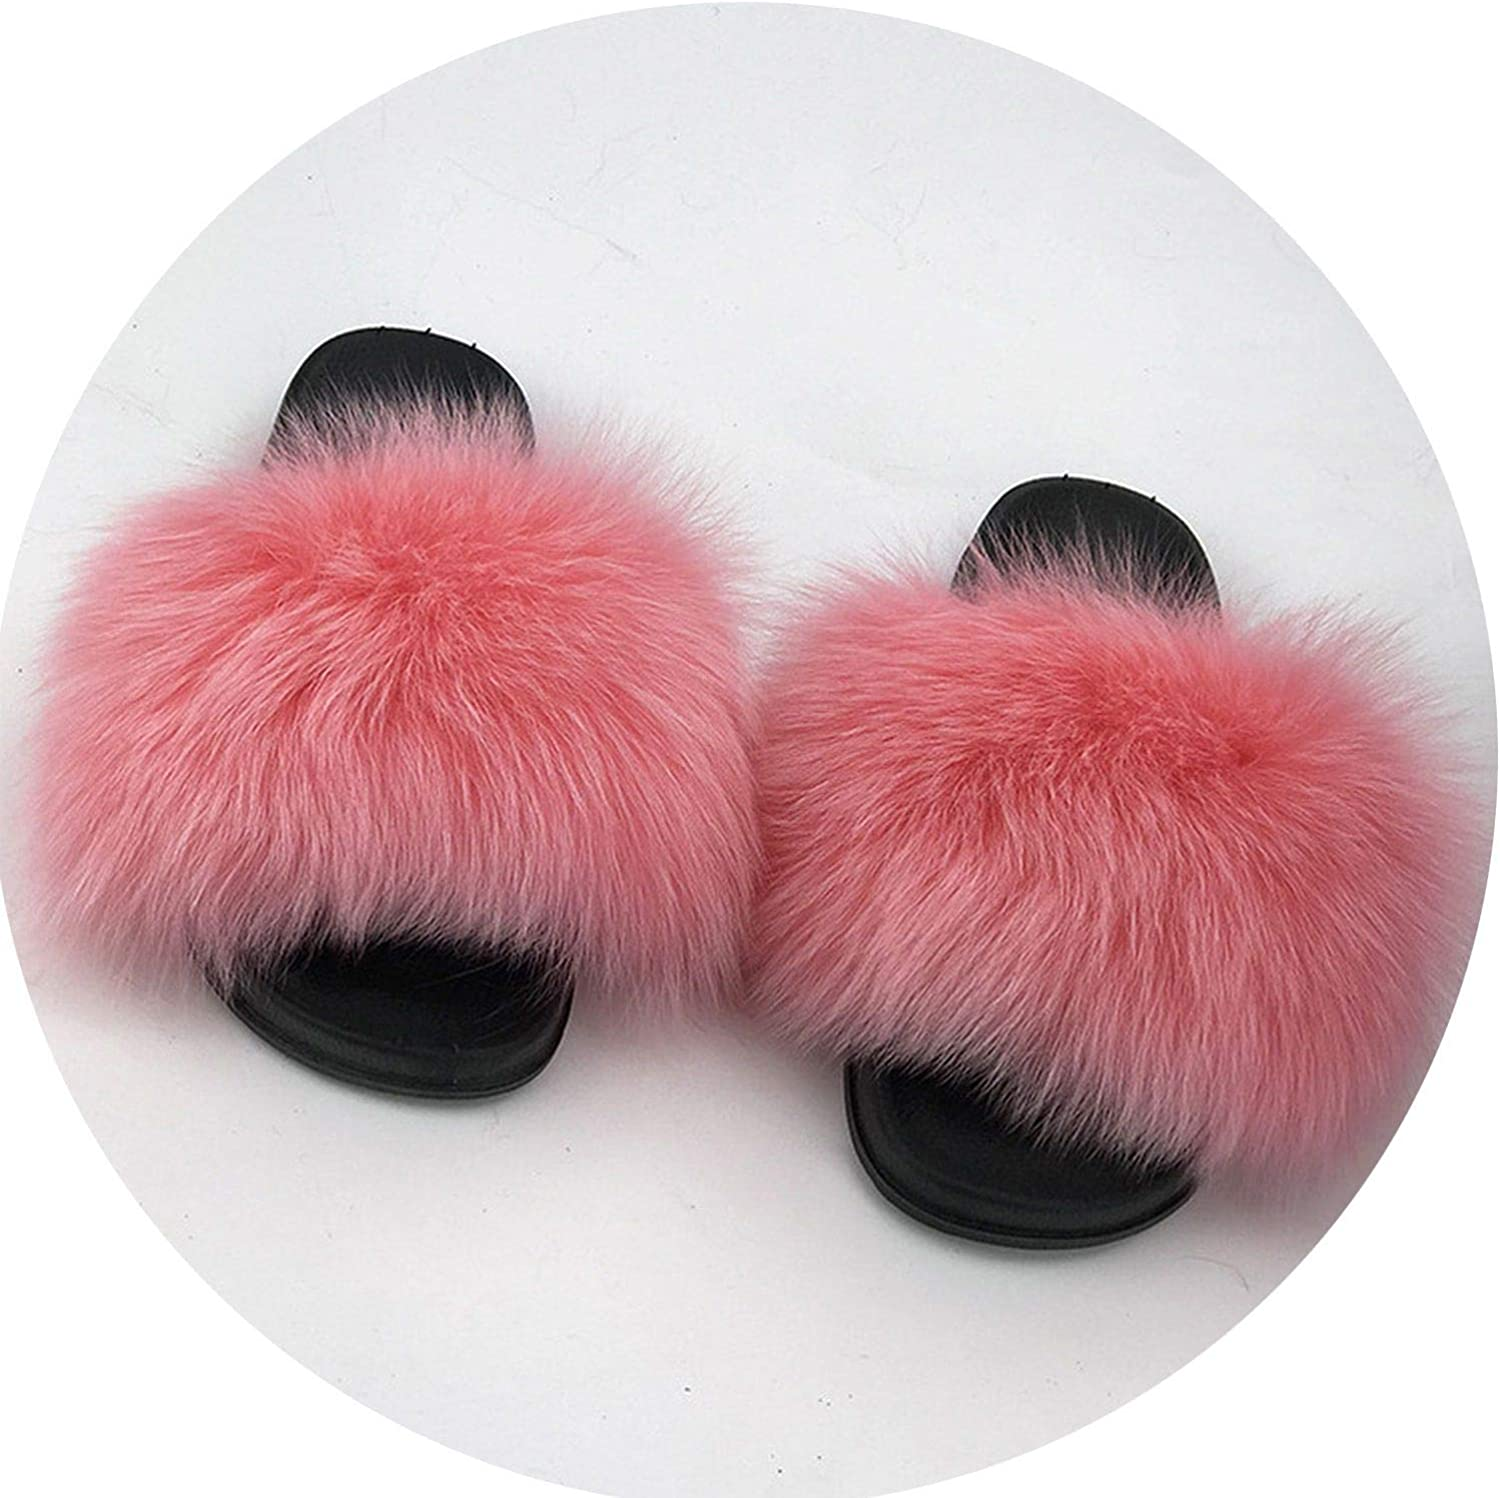 Maggilee Real Raccoon Fur Slippers Women 2018 Sliders Casual Fox Hair Flat Fluffy Fashion Home Summer Big Size 45 Furry Flip Flops shoes,5,9